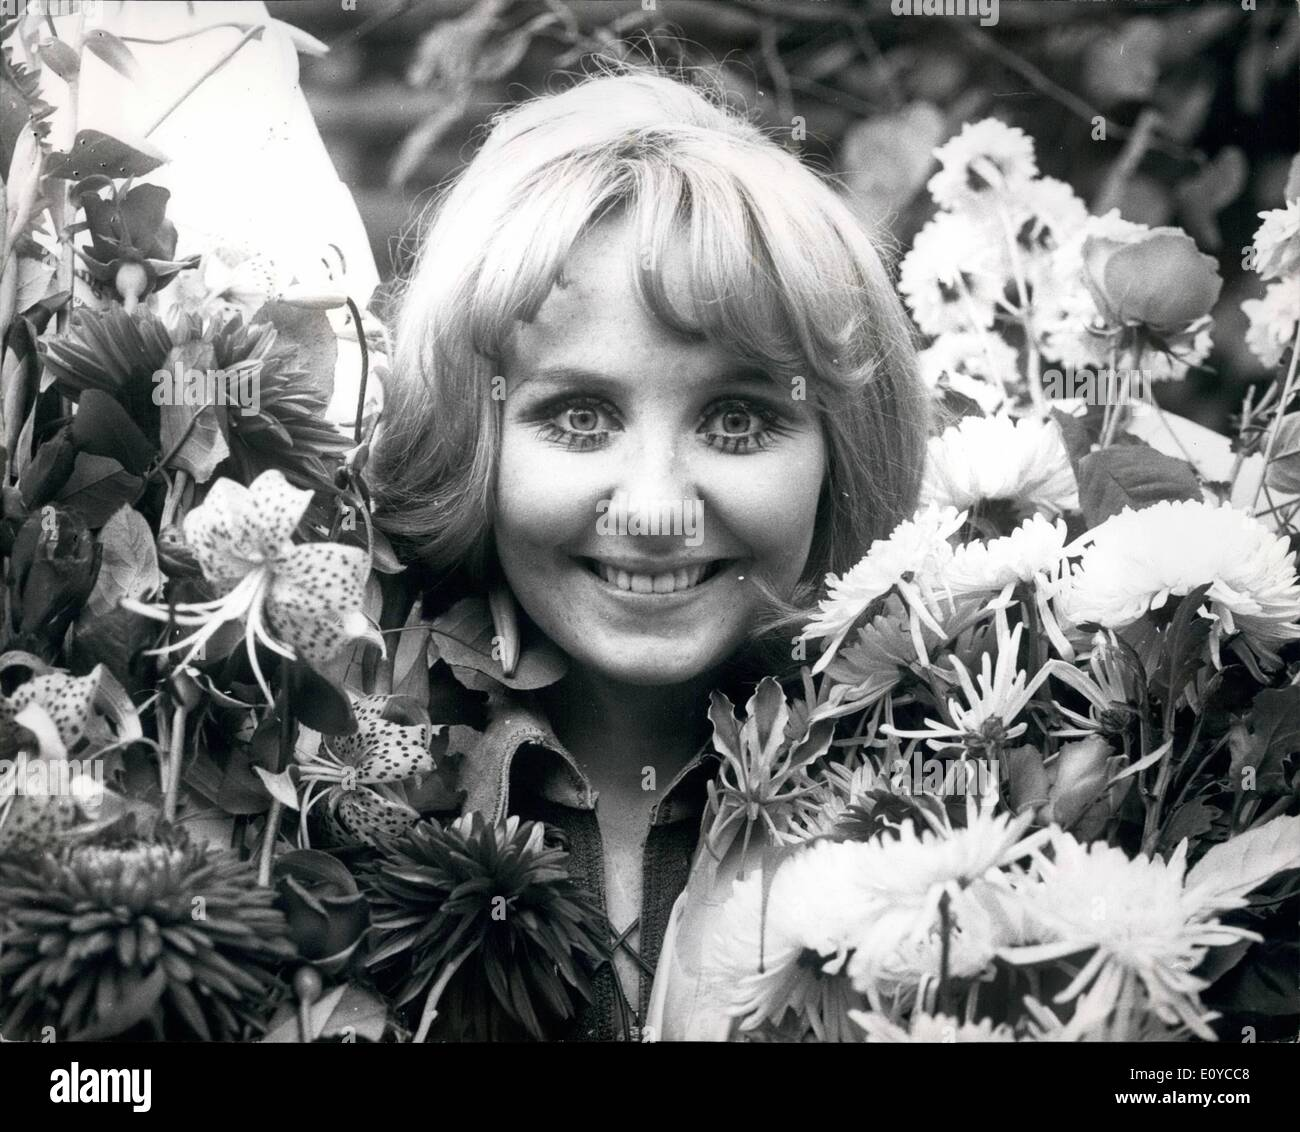 Nov. 11, 1969 - Pop Star Lulu Celebrates her 21st. Birthday Tomorrow; Lulu, the highly successful pop star, and wife of Maurice - Stock Image